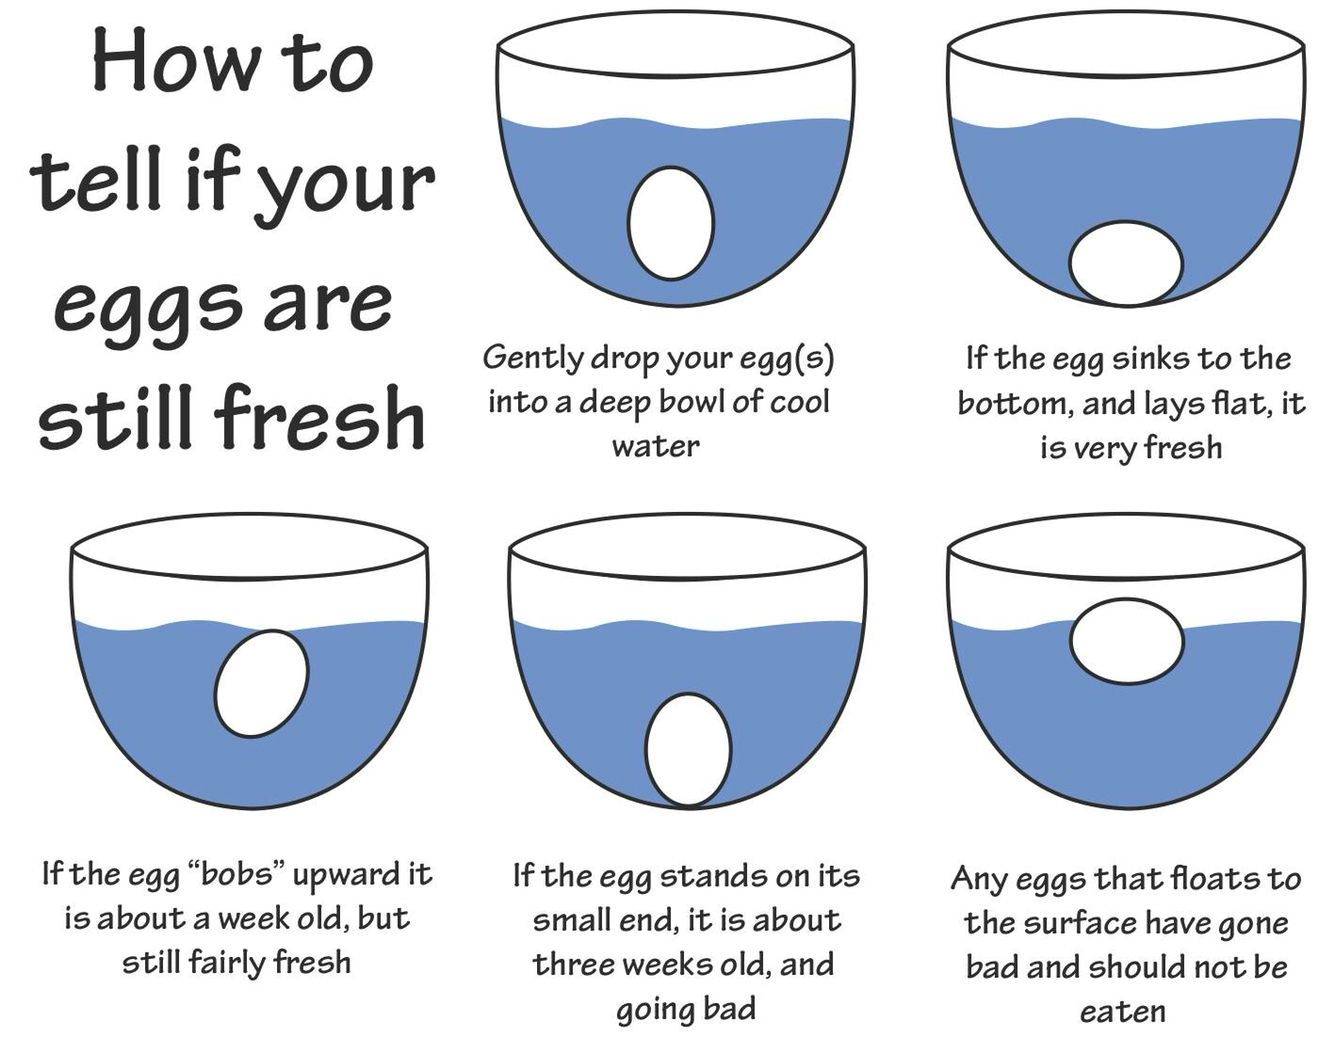 How to Tell if Your Eggs Are Fresh